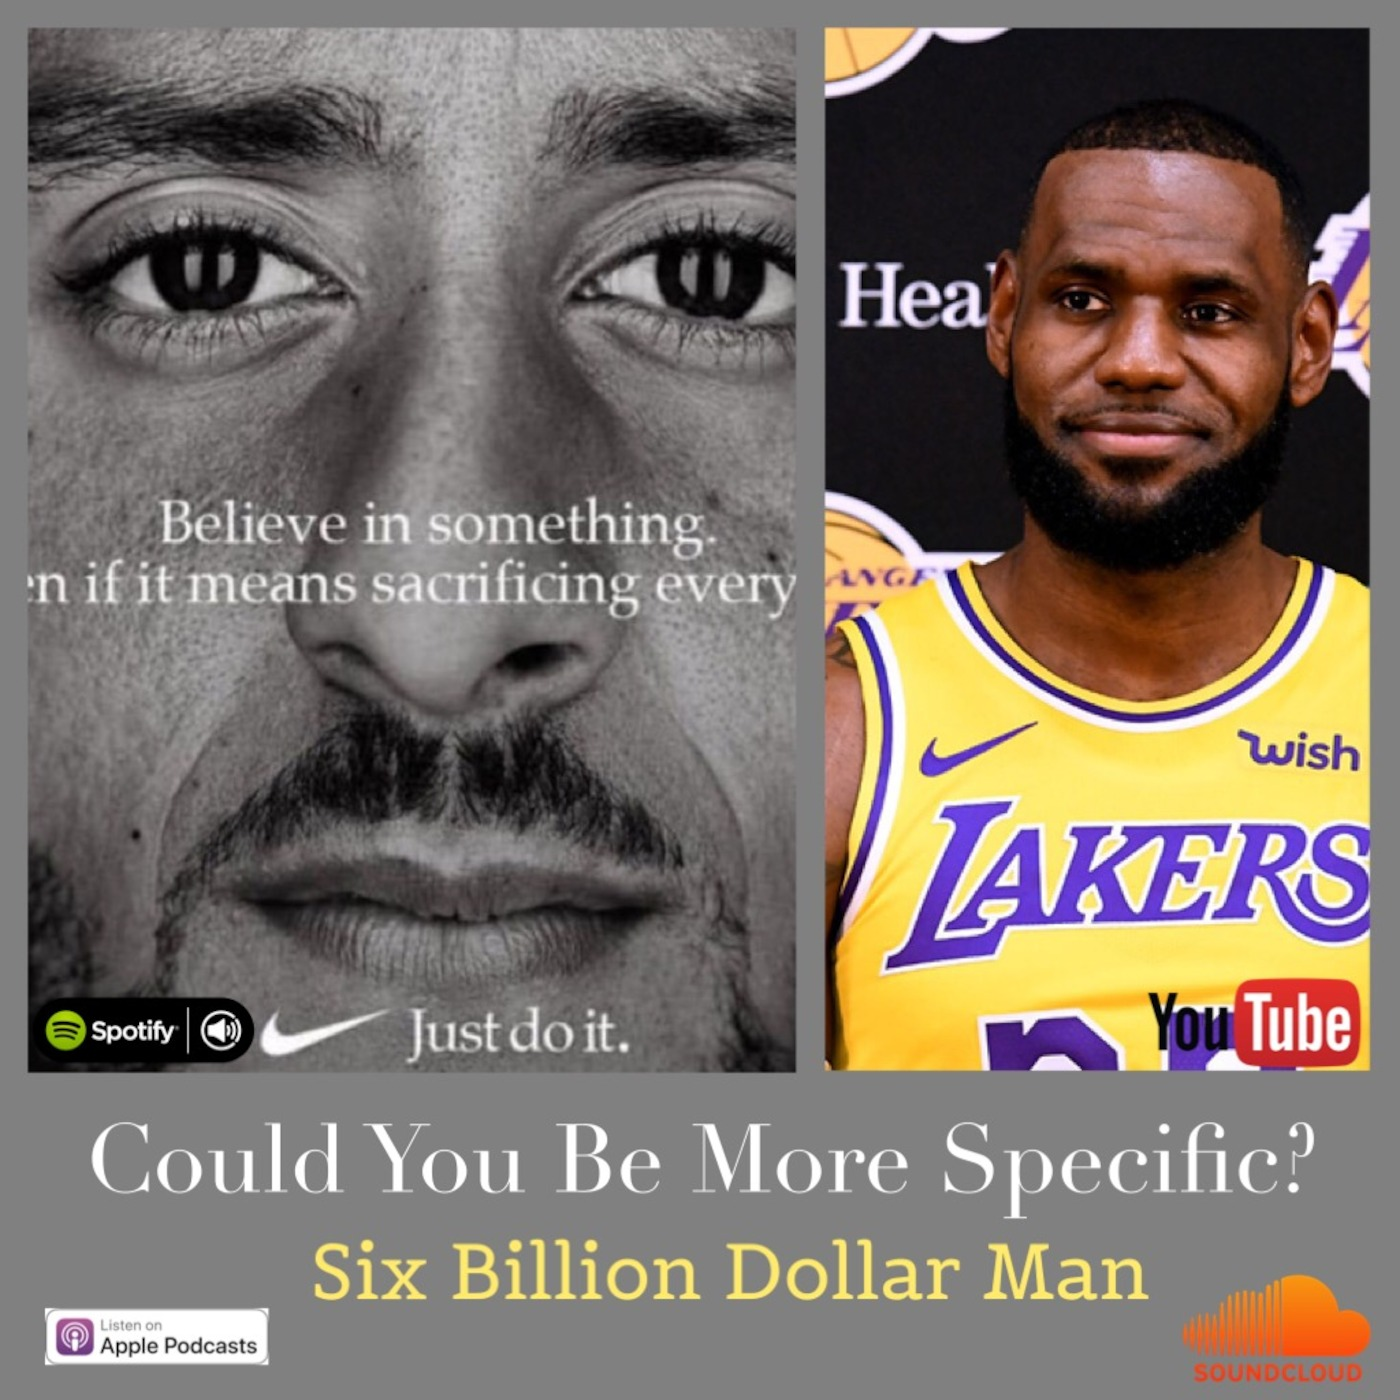 Jonathan Steele Touch On The Recent News Of Nike Reaching An All Time High With Colin Kaepernick And I Touch On Lebron James